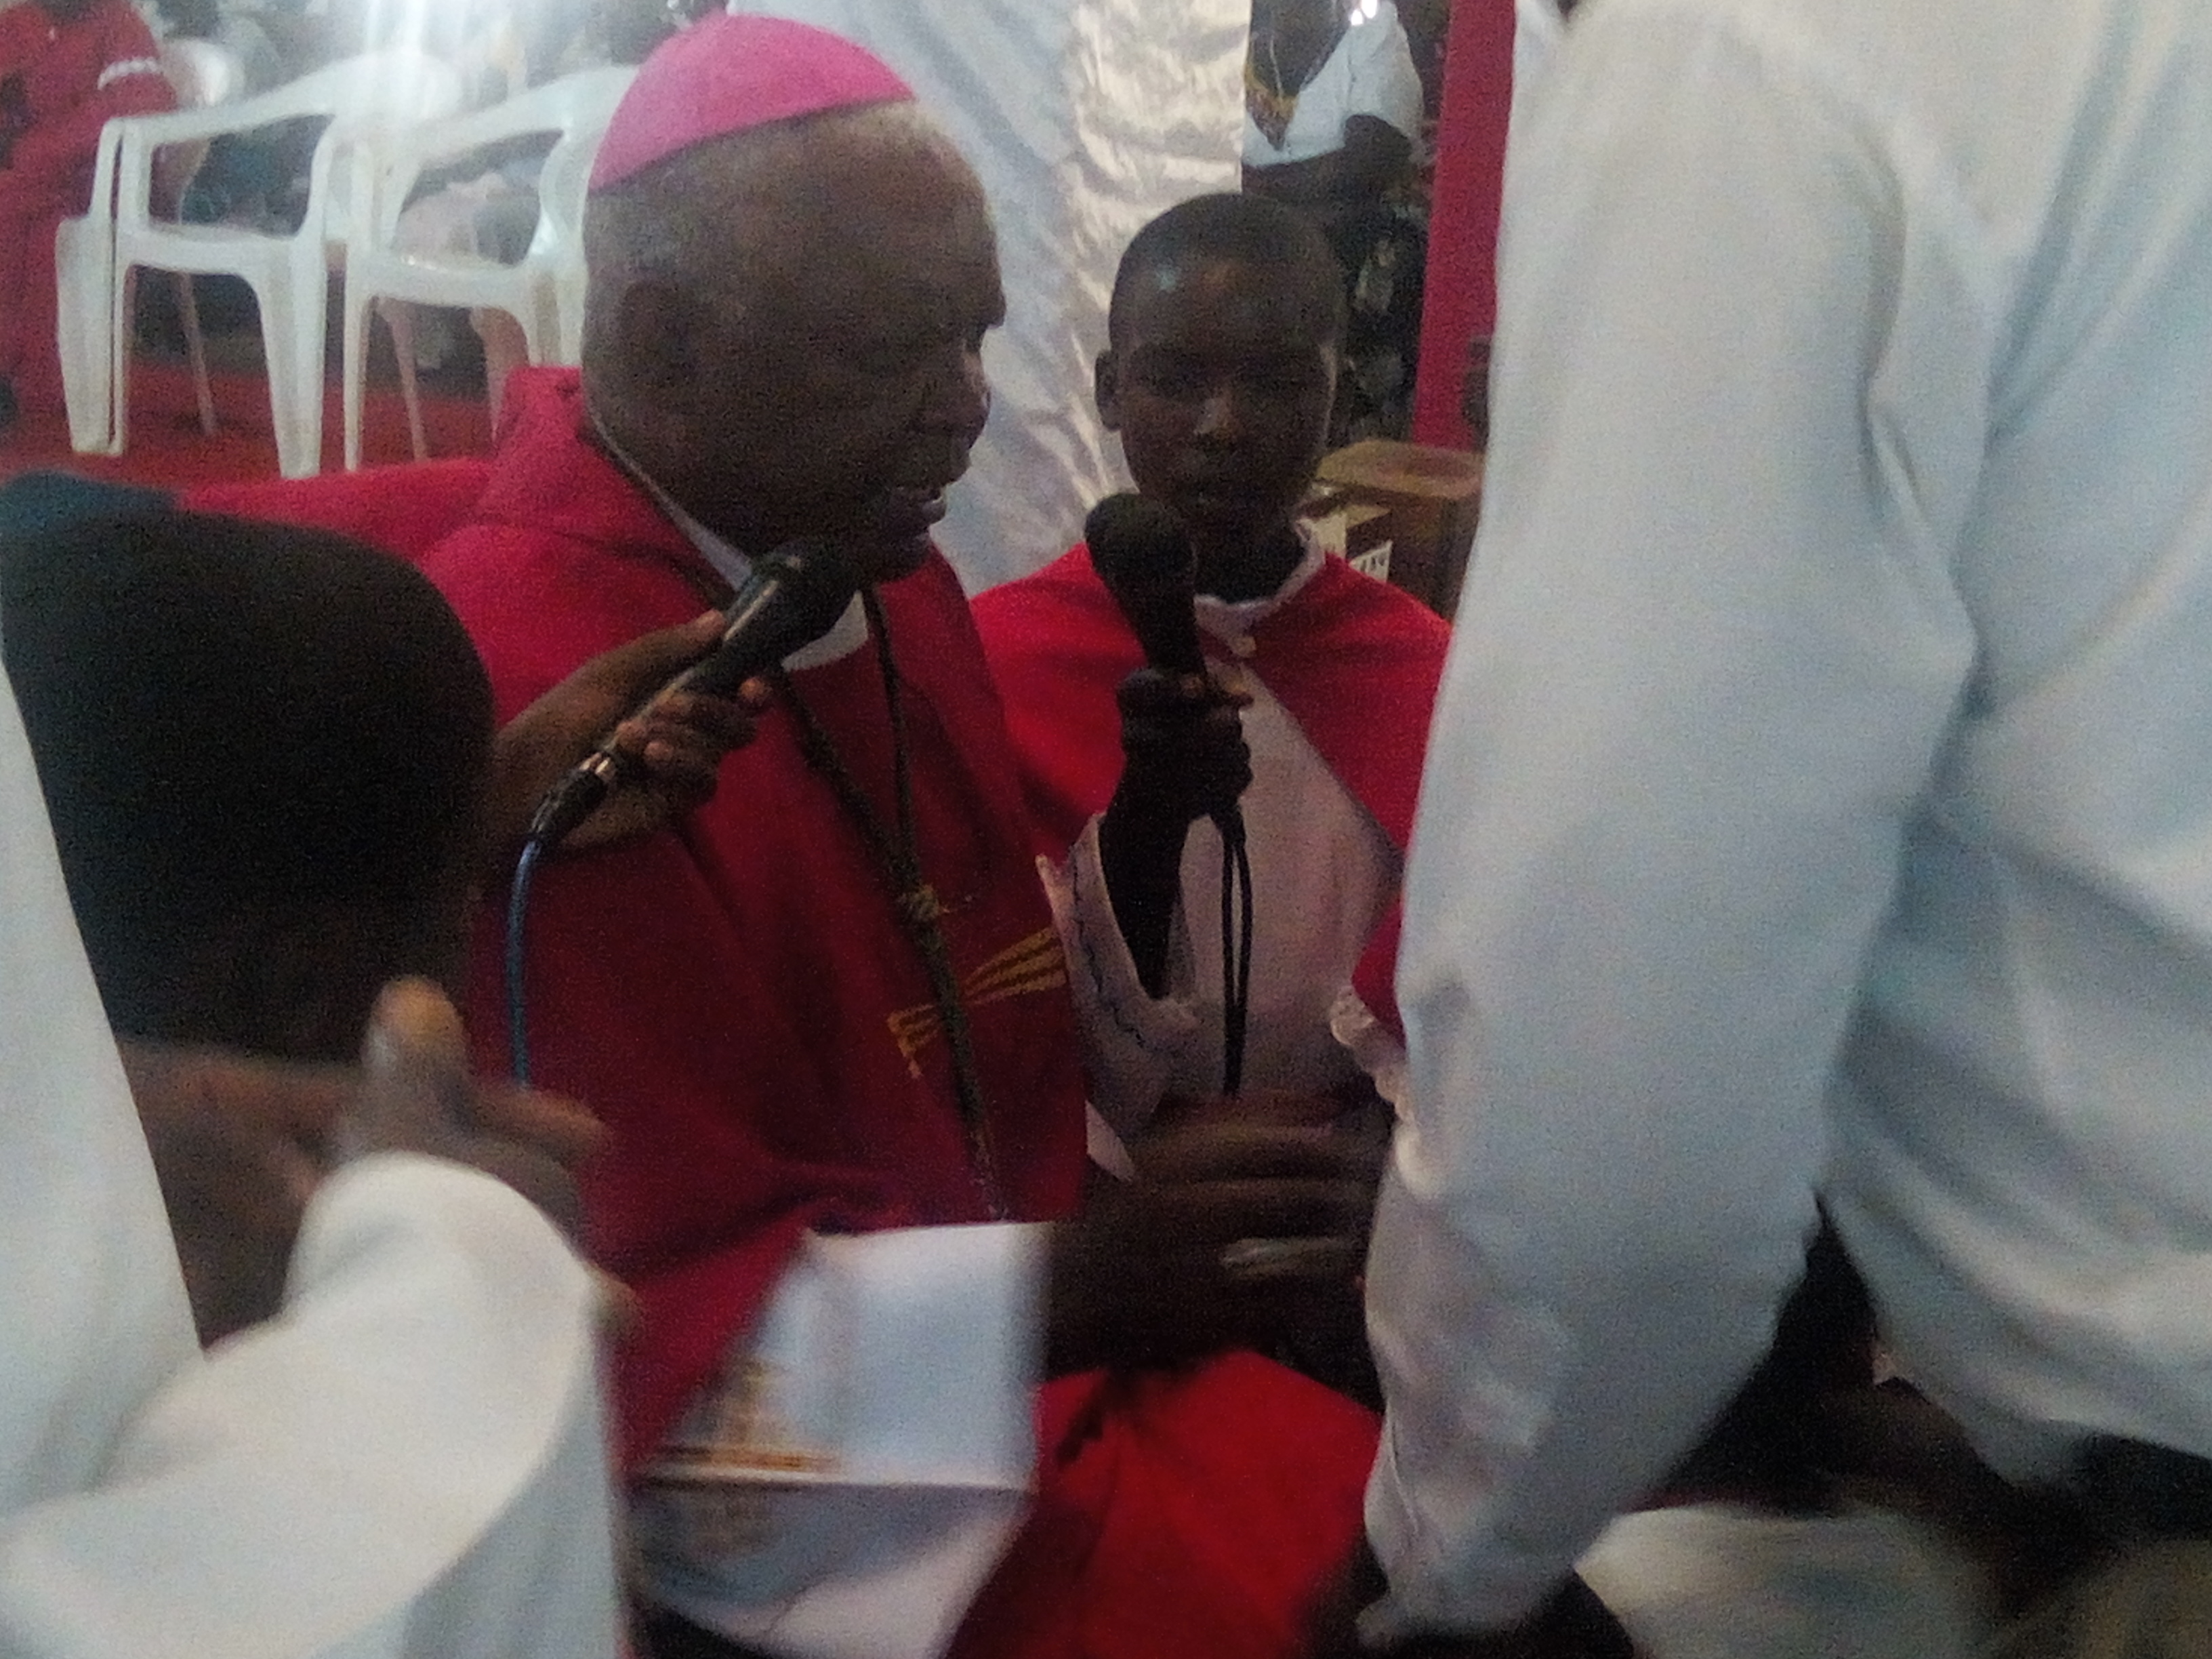 Bishop Mtumbuka Exhorts Newly Confirmed Christians to Profess and Live their Faith